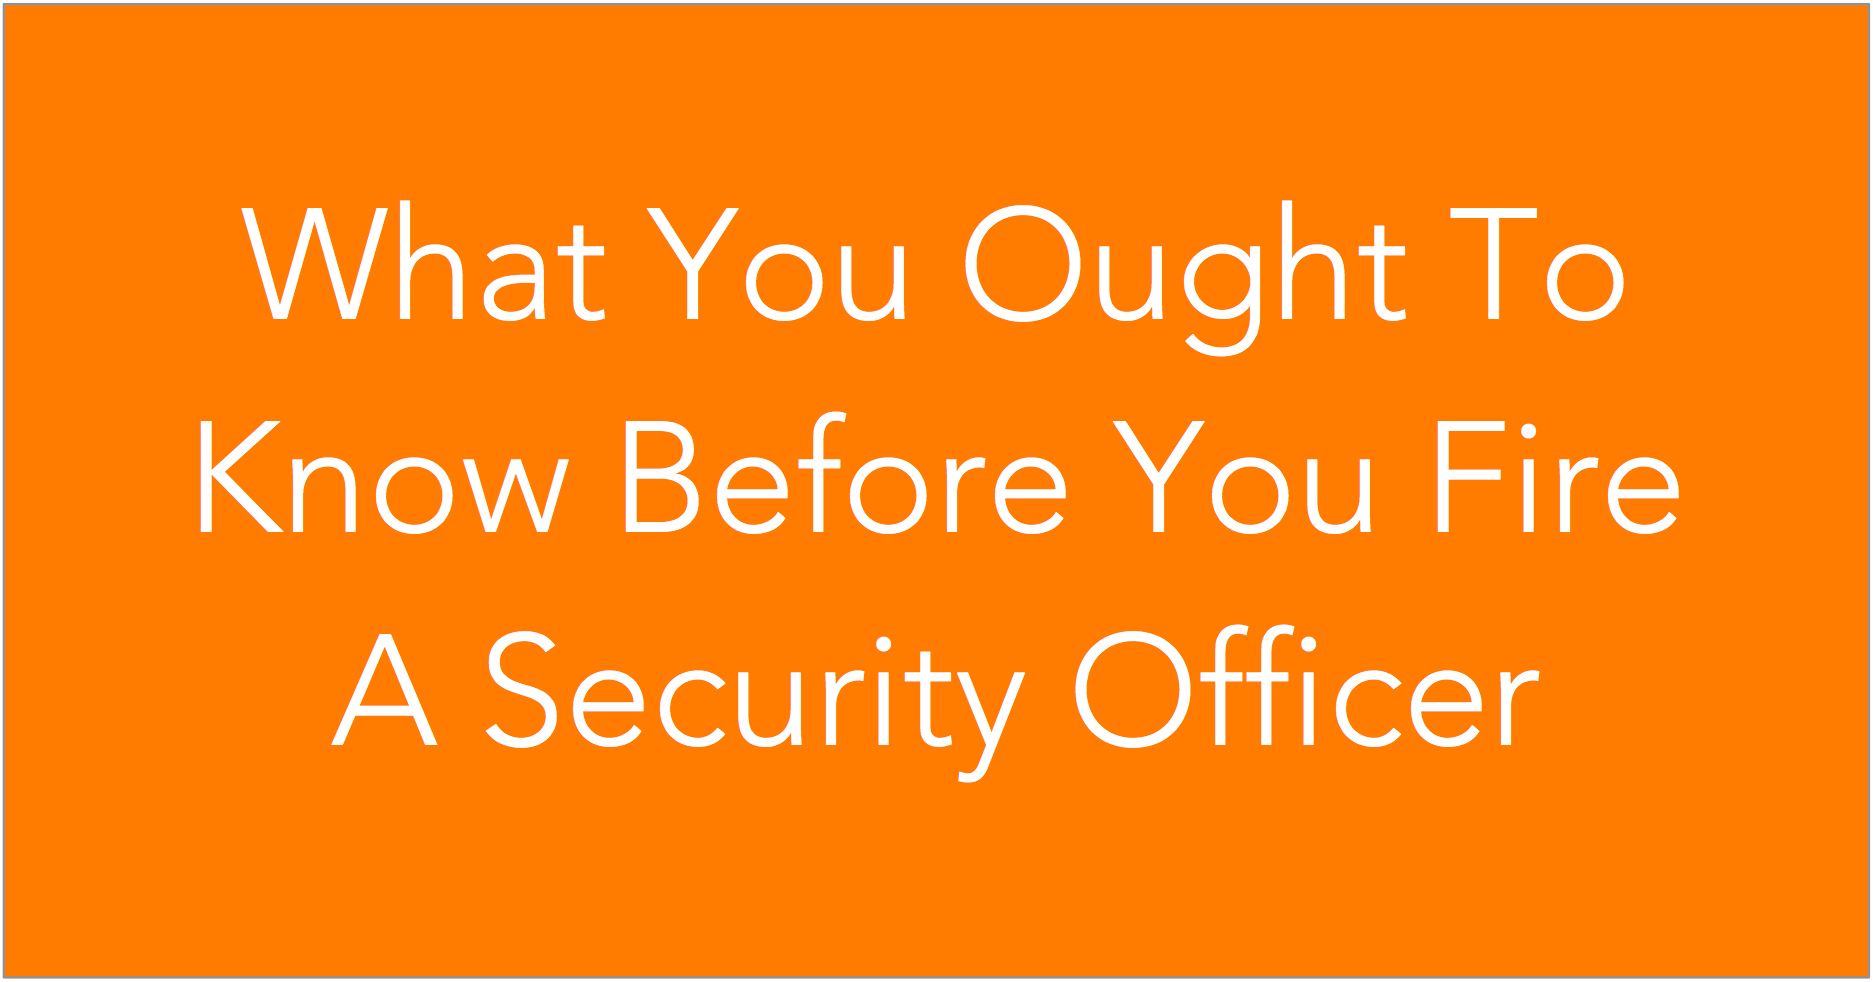 What You Ought To Know Before You Fire A Security Officer